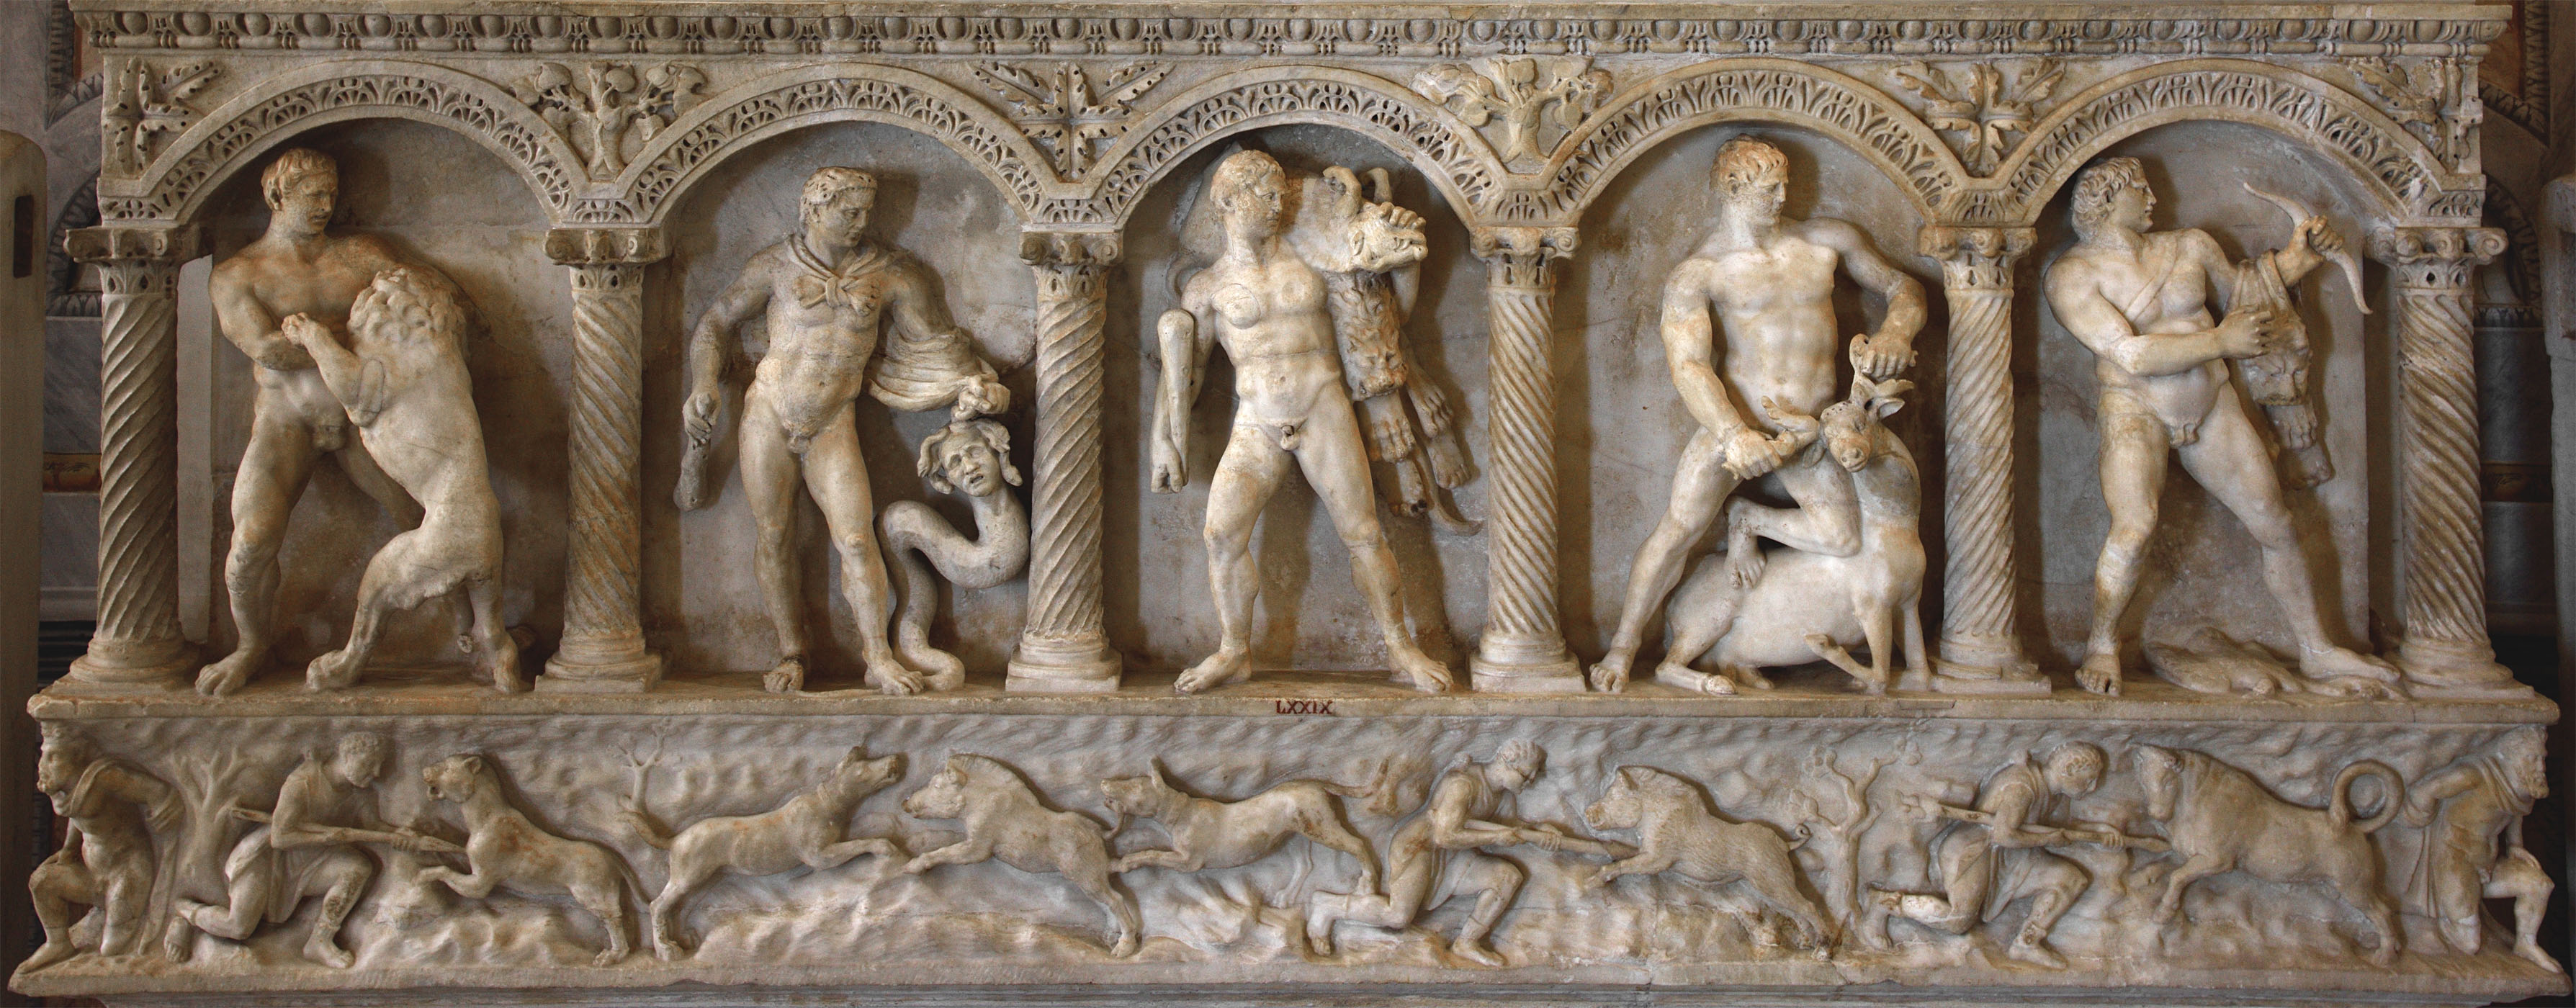 Front of columnar sarcophagus showing the Labours of Heracles and scenes of hunt. Asiatic marble. 160 CE.  Inv. No. LXXIX / 79. Rome, Museum and Gallery of Villa Borghese, Room II